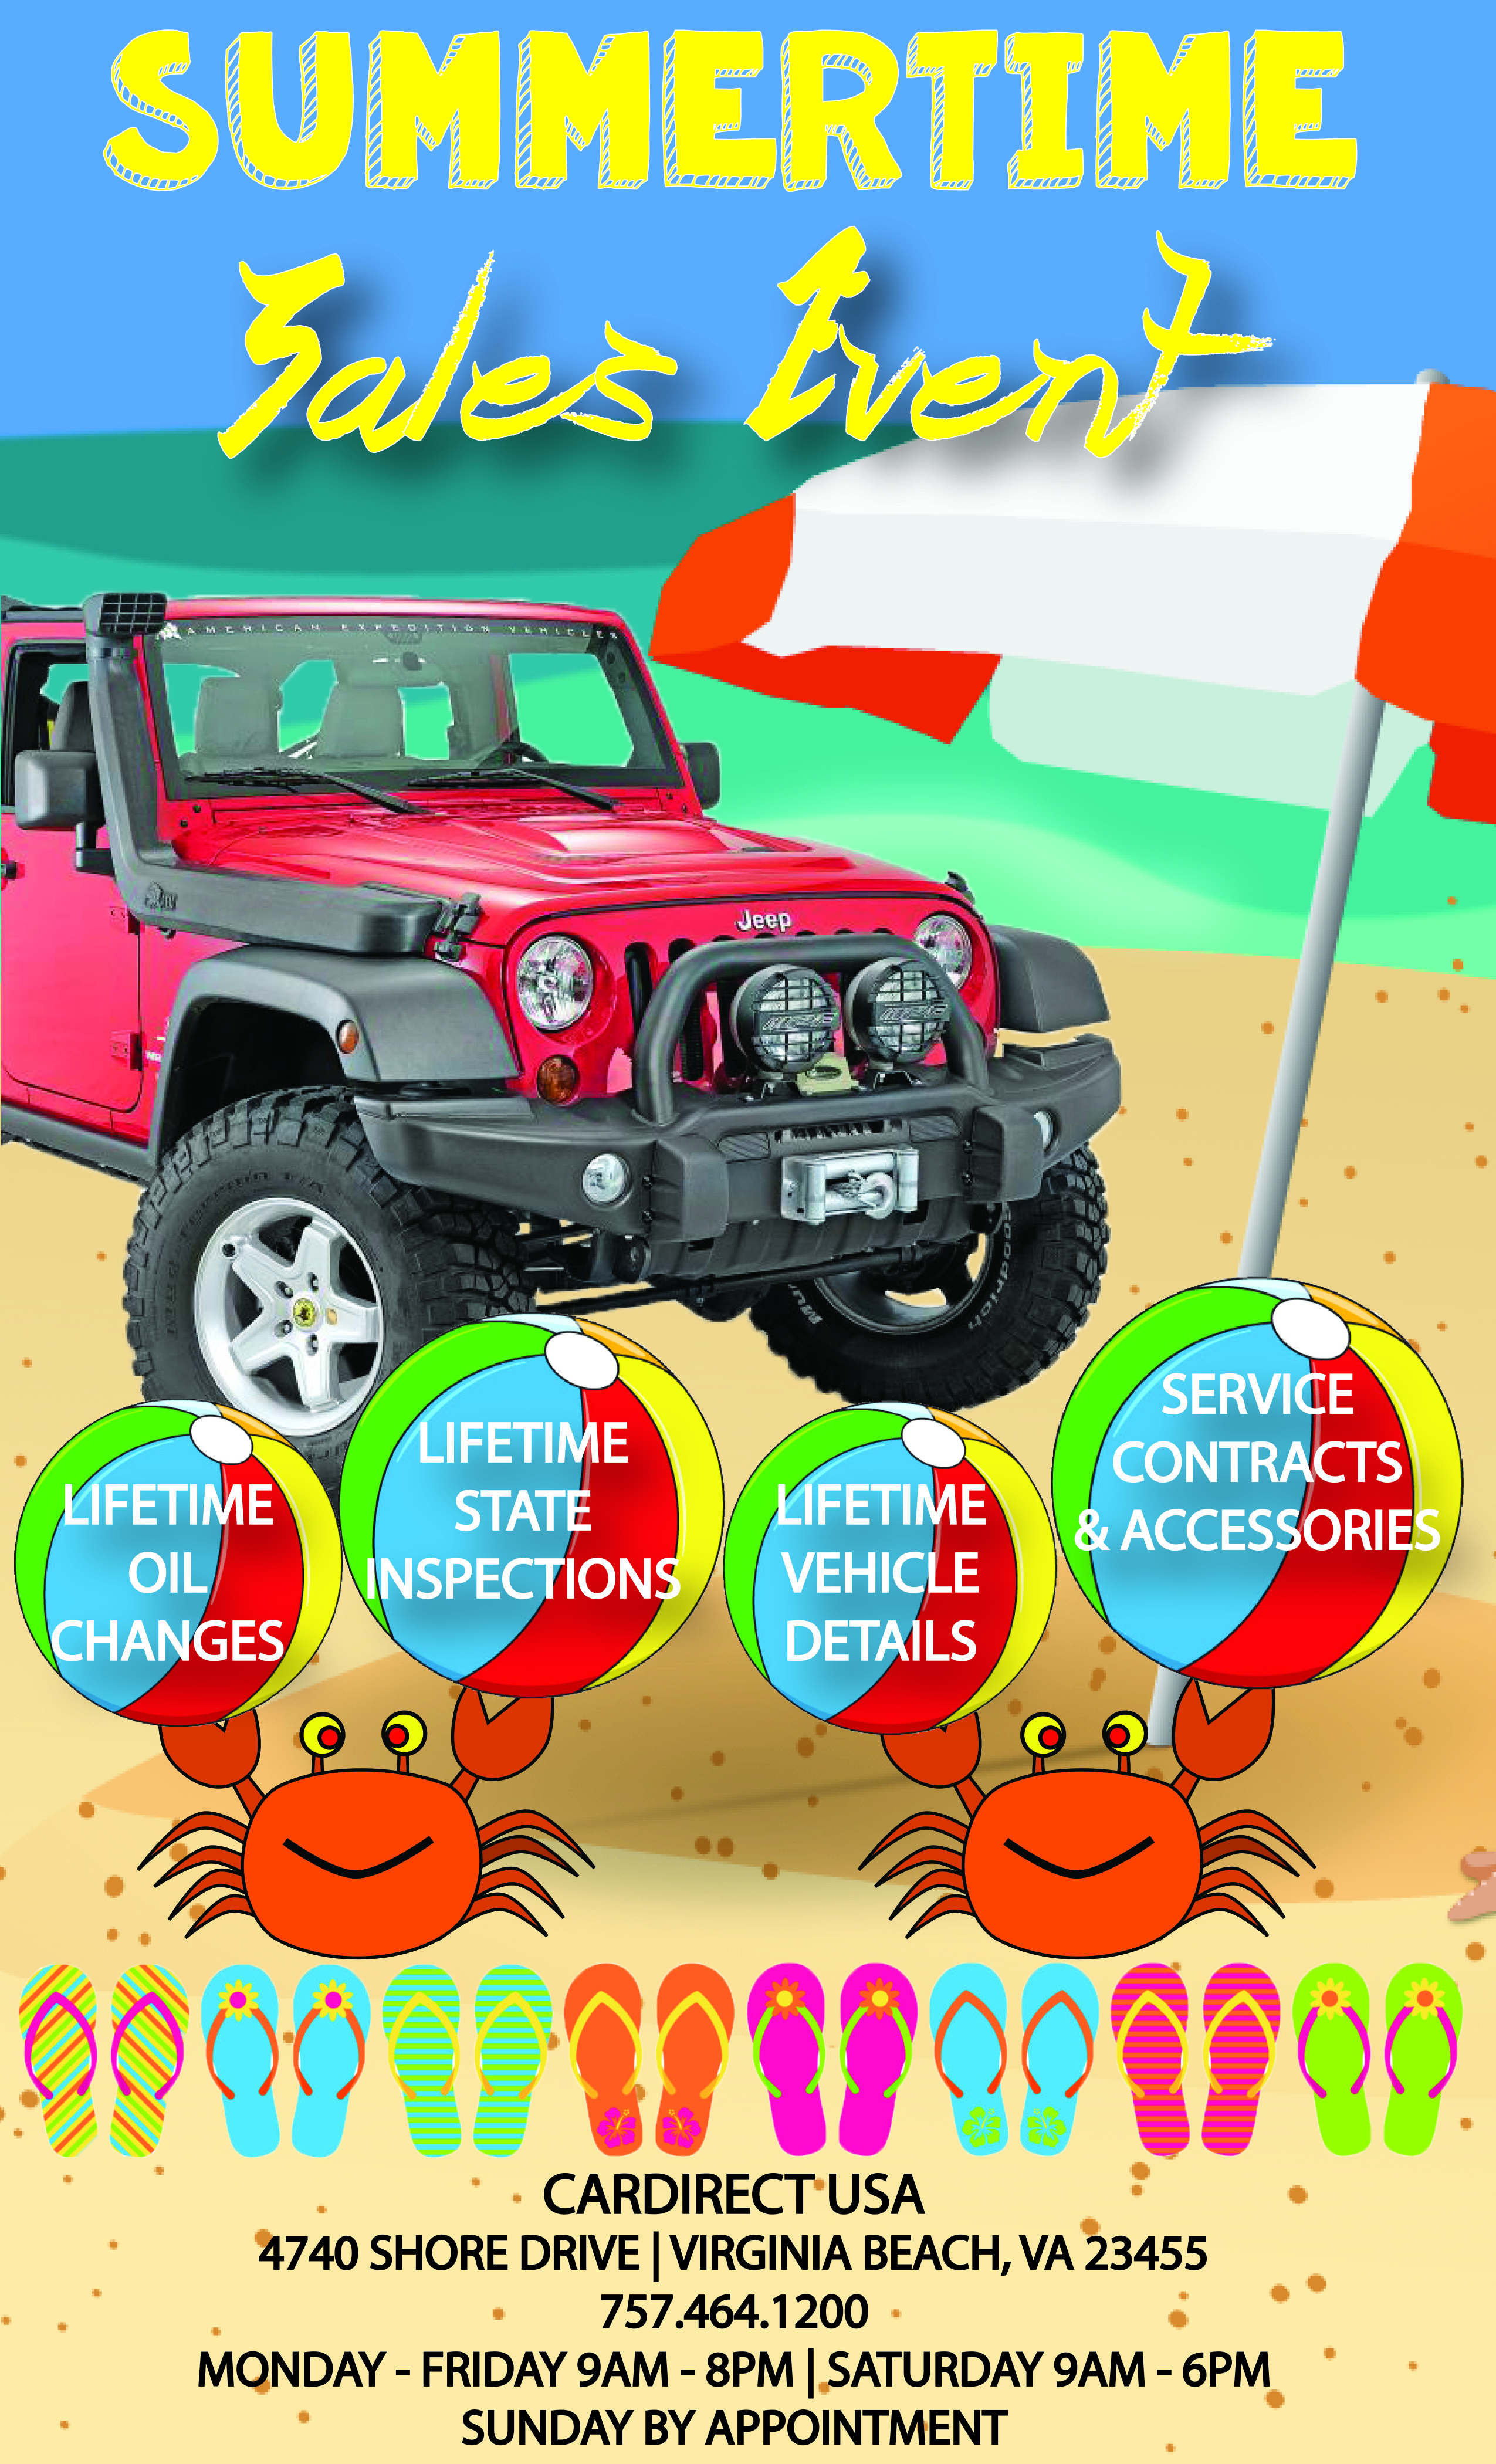 SUMMERTIME SALES EVENT IS HAPPENING NOW - Car Direct LLC